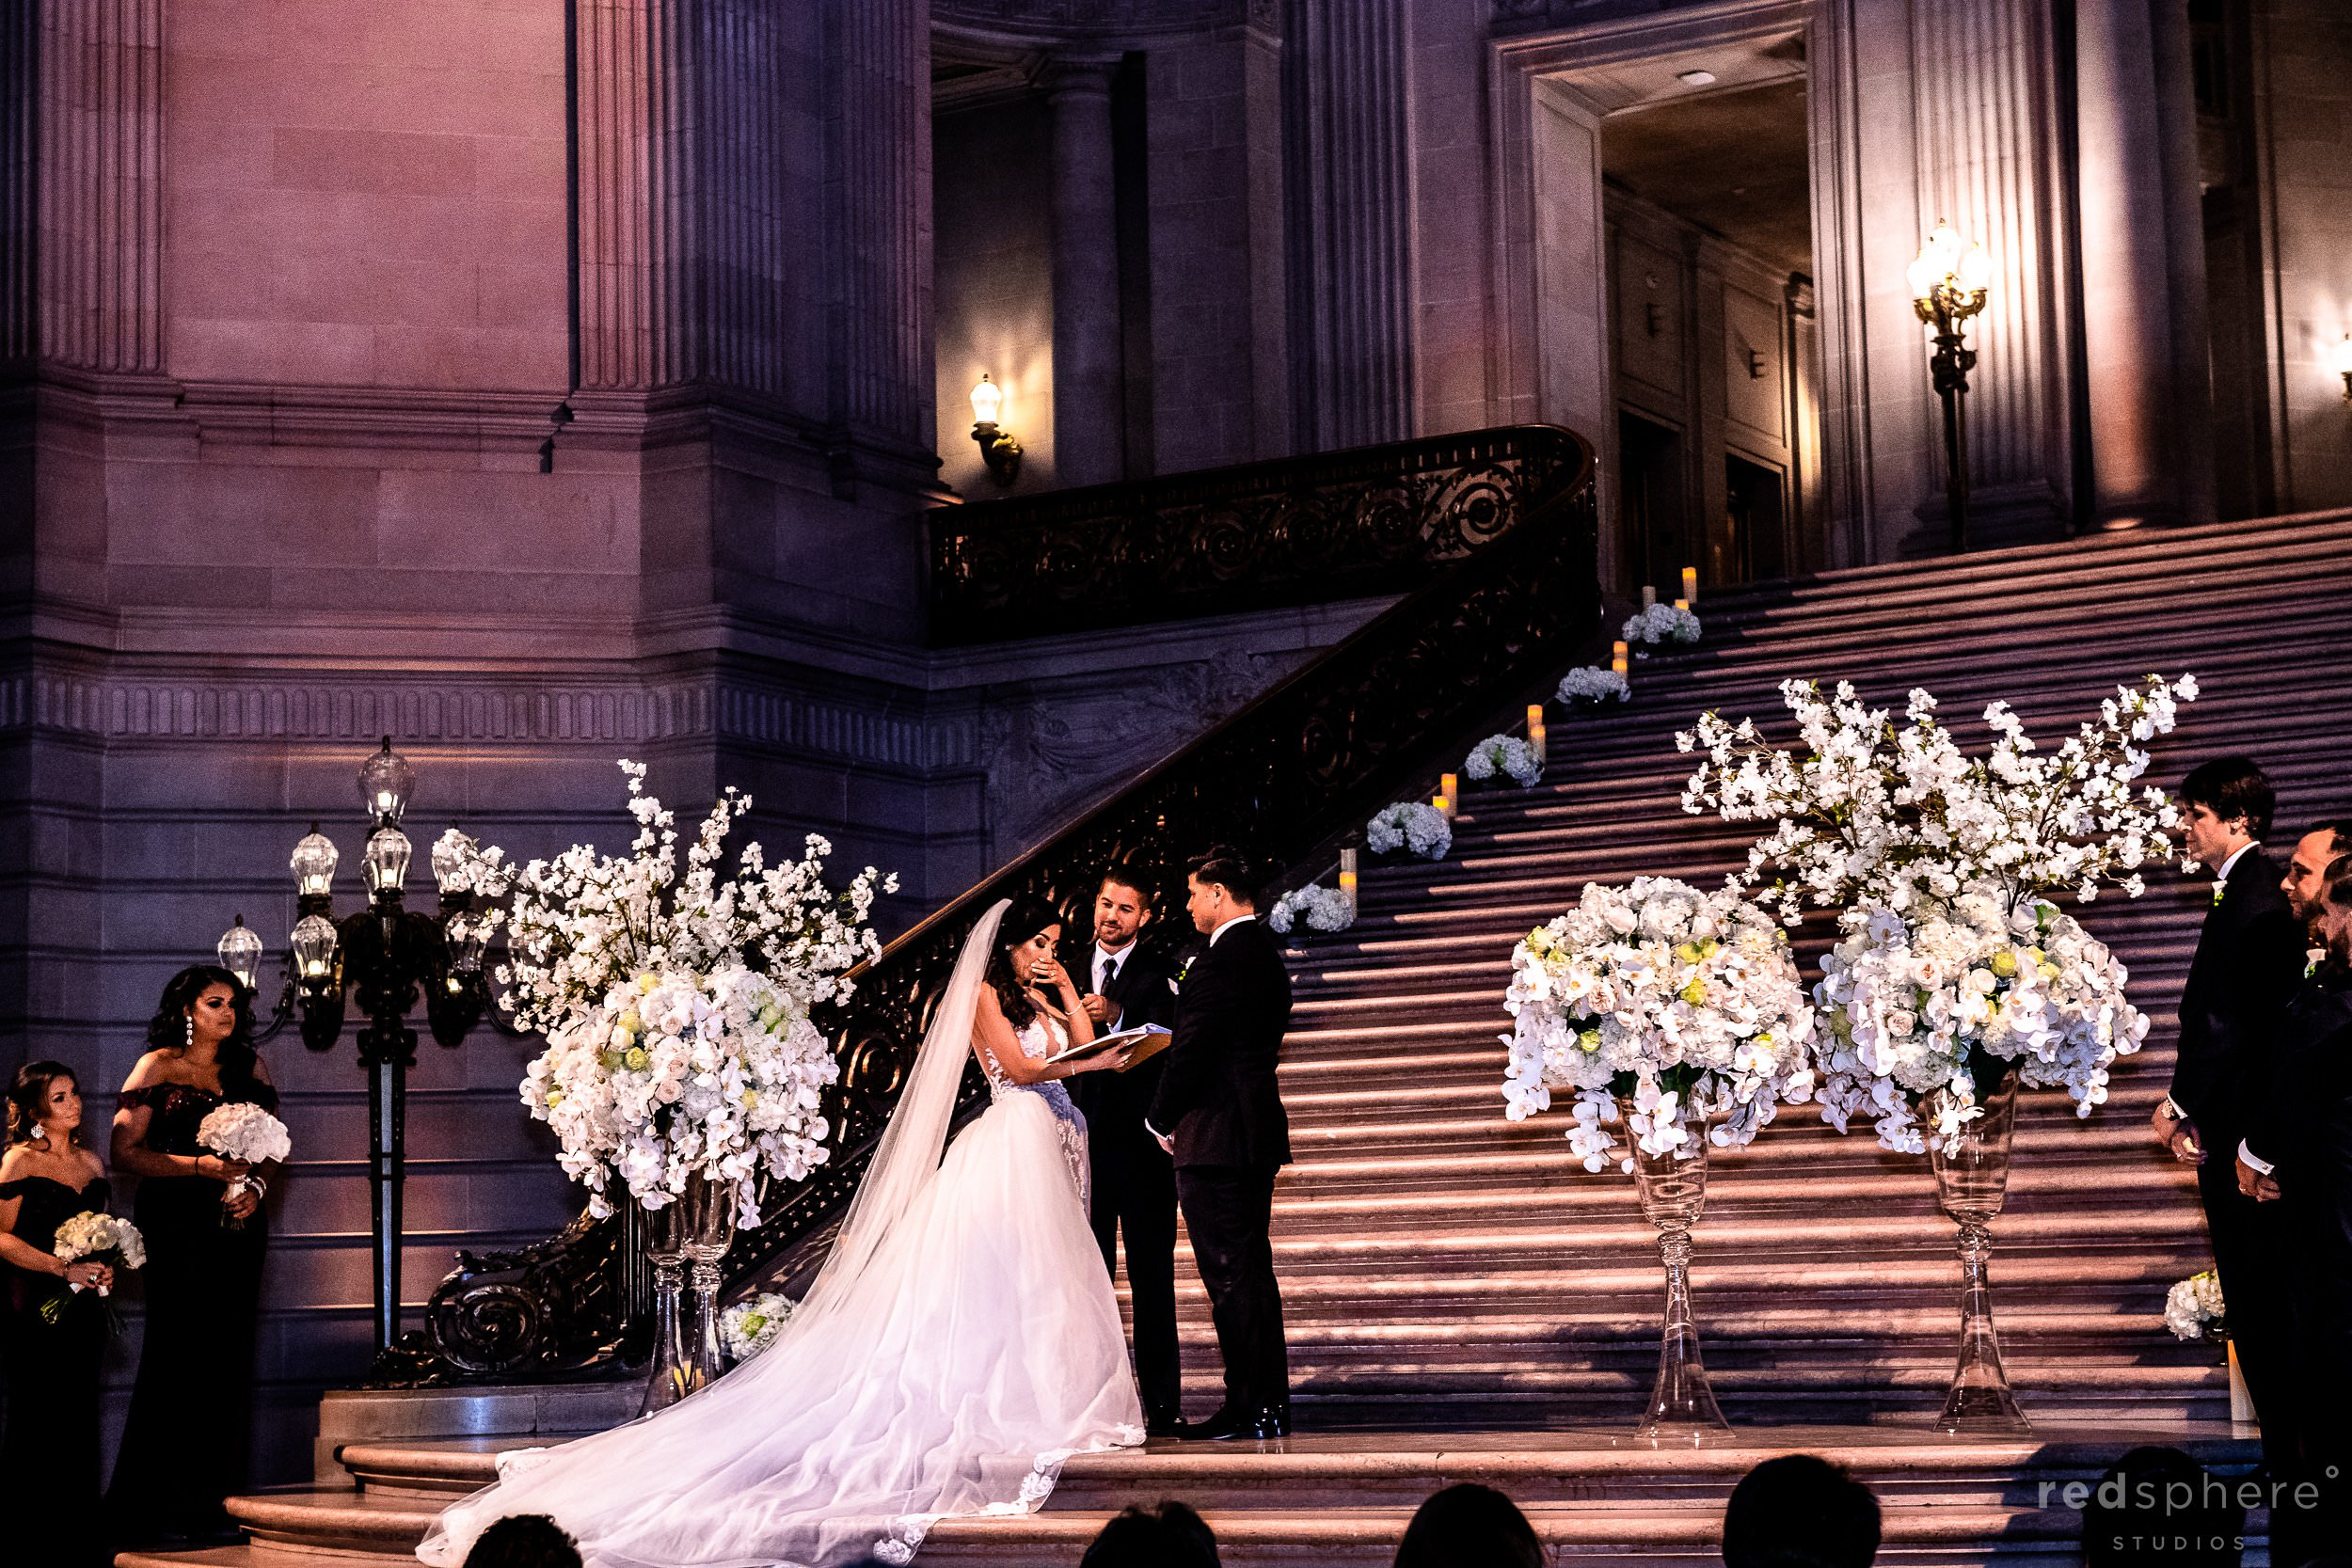 Wedding Event at SF city hall